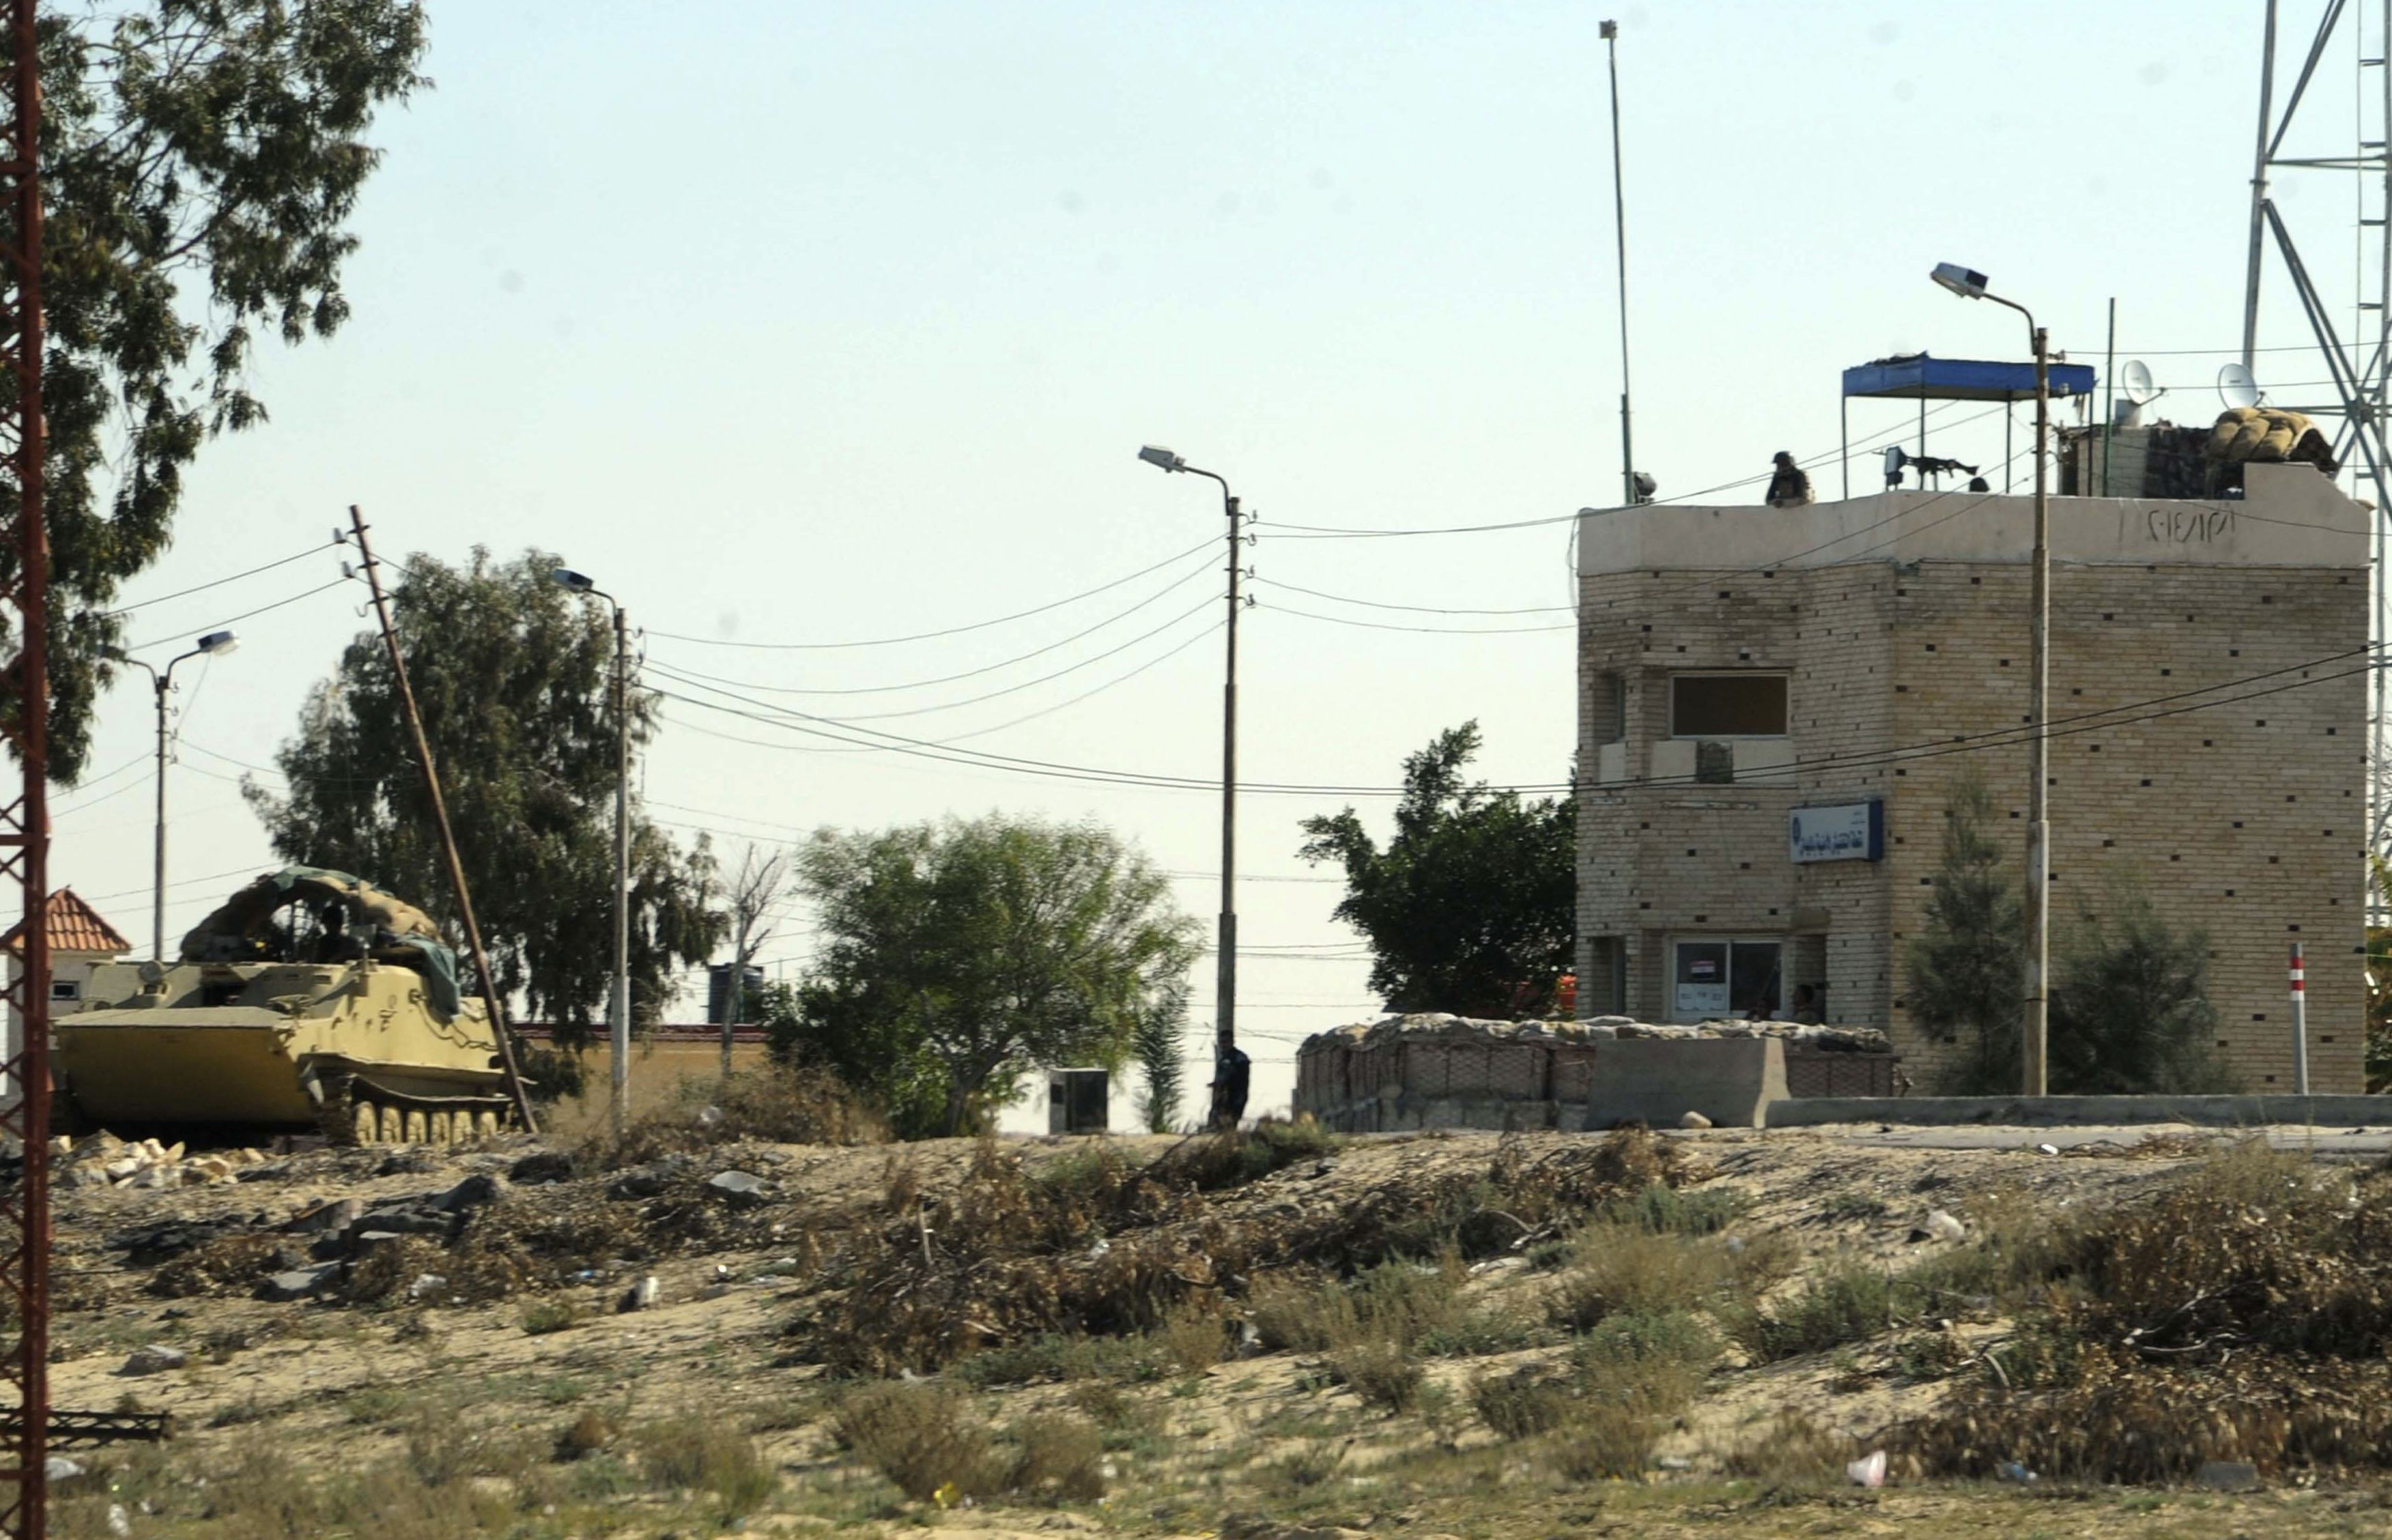 Child killed in mortar attack in Sinai – security source